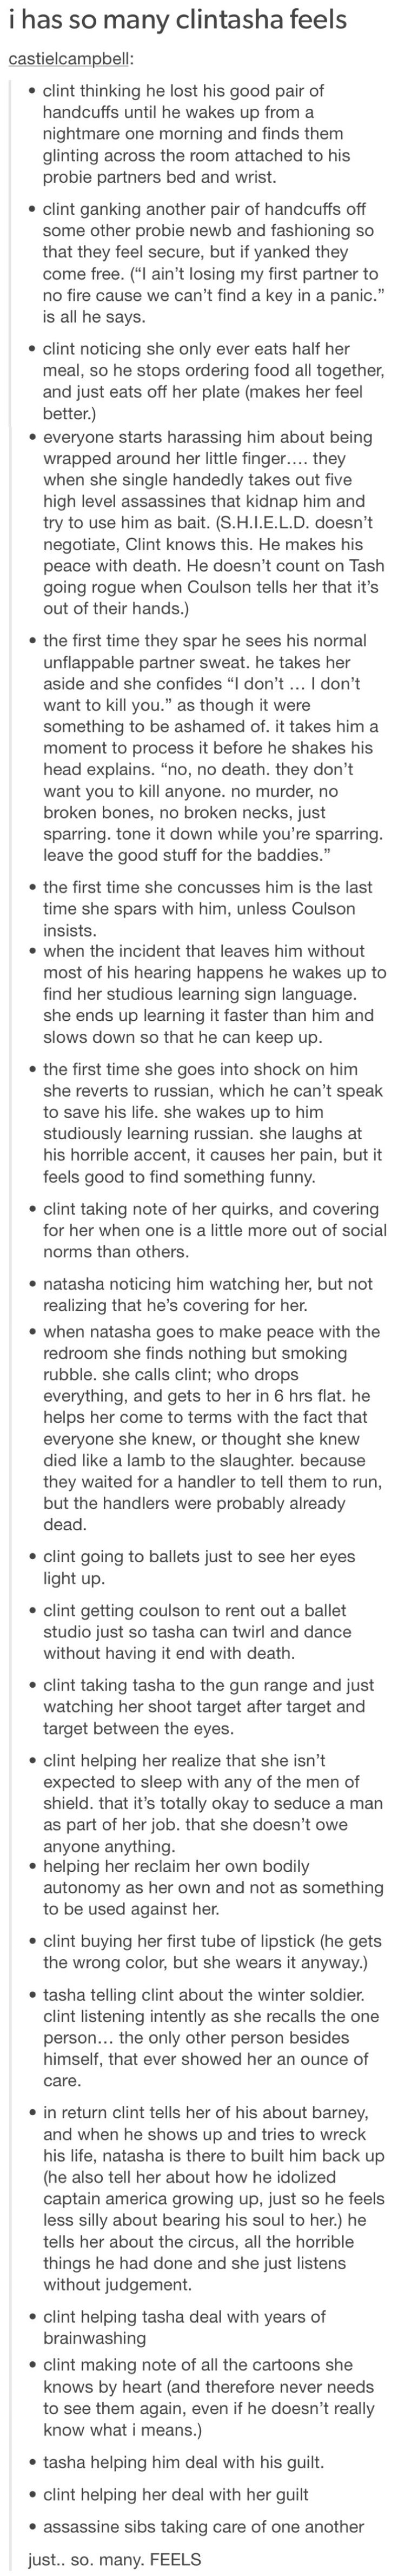 Not much of a Clintasha shipper, but this was like the most precious, feels-inducing thing I've ever read.